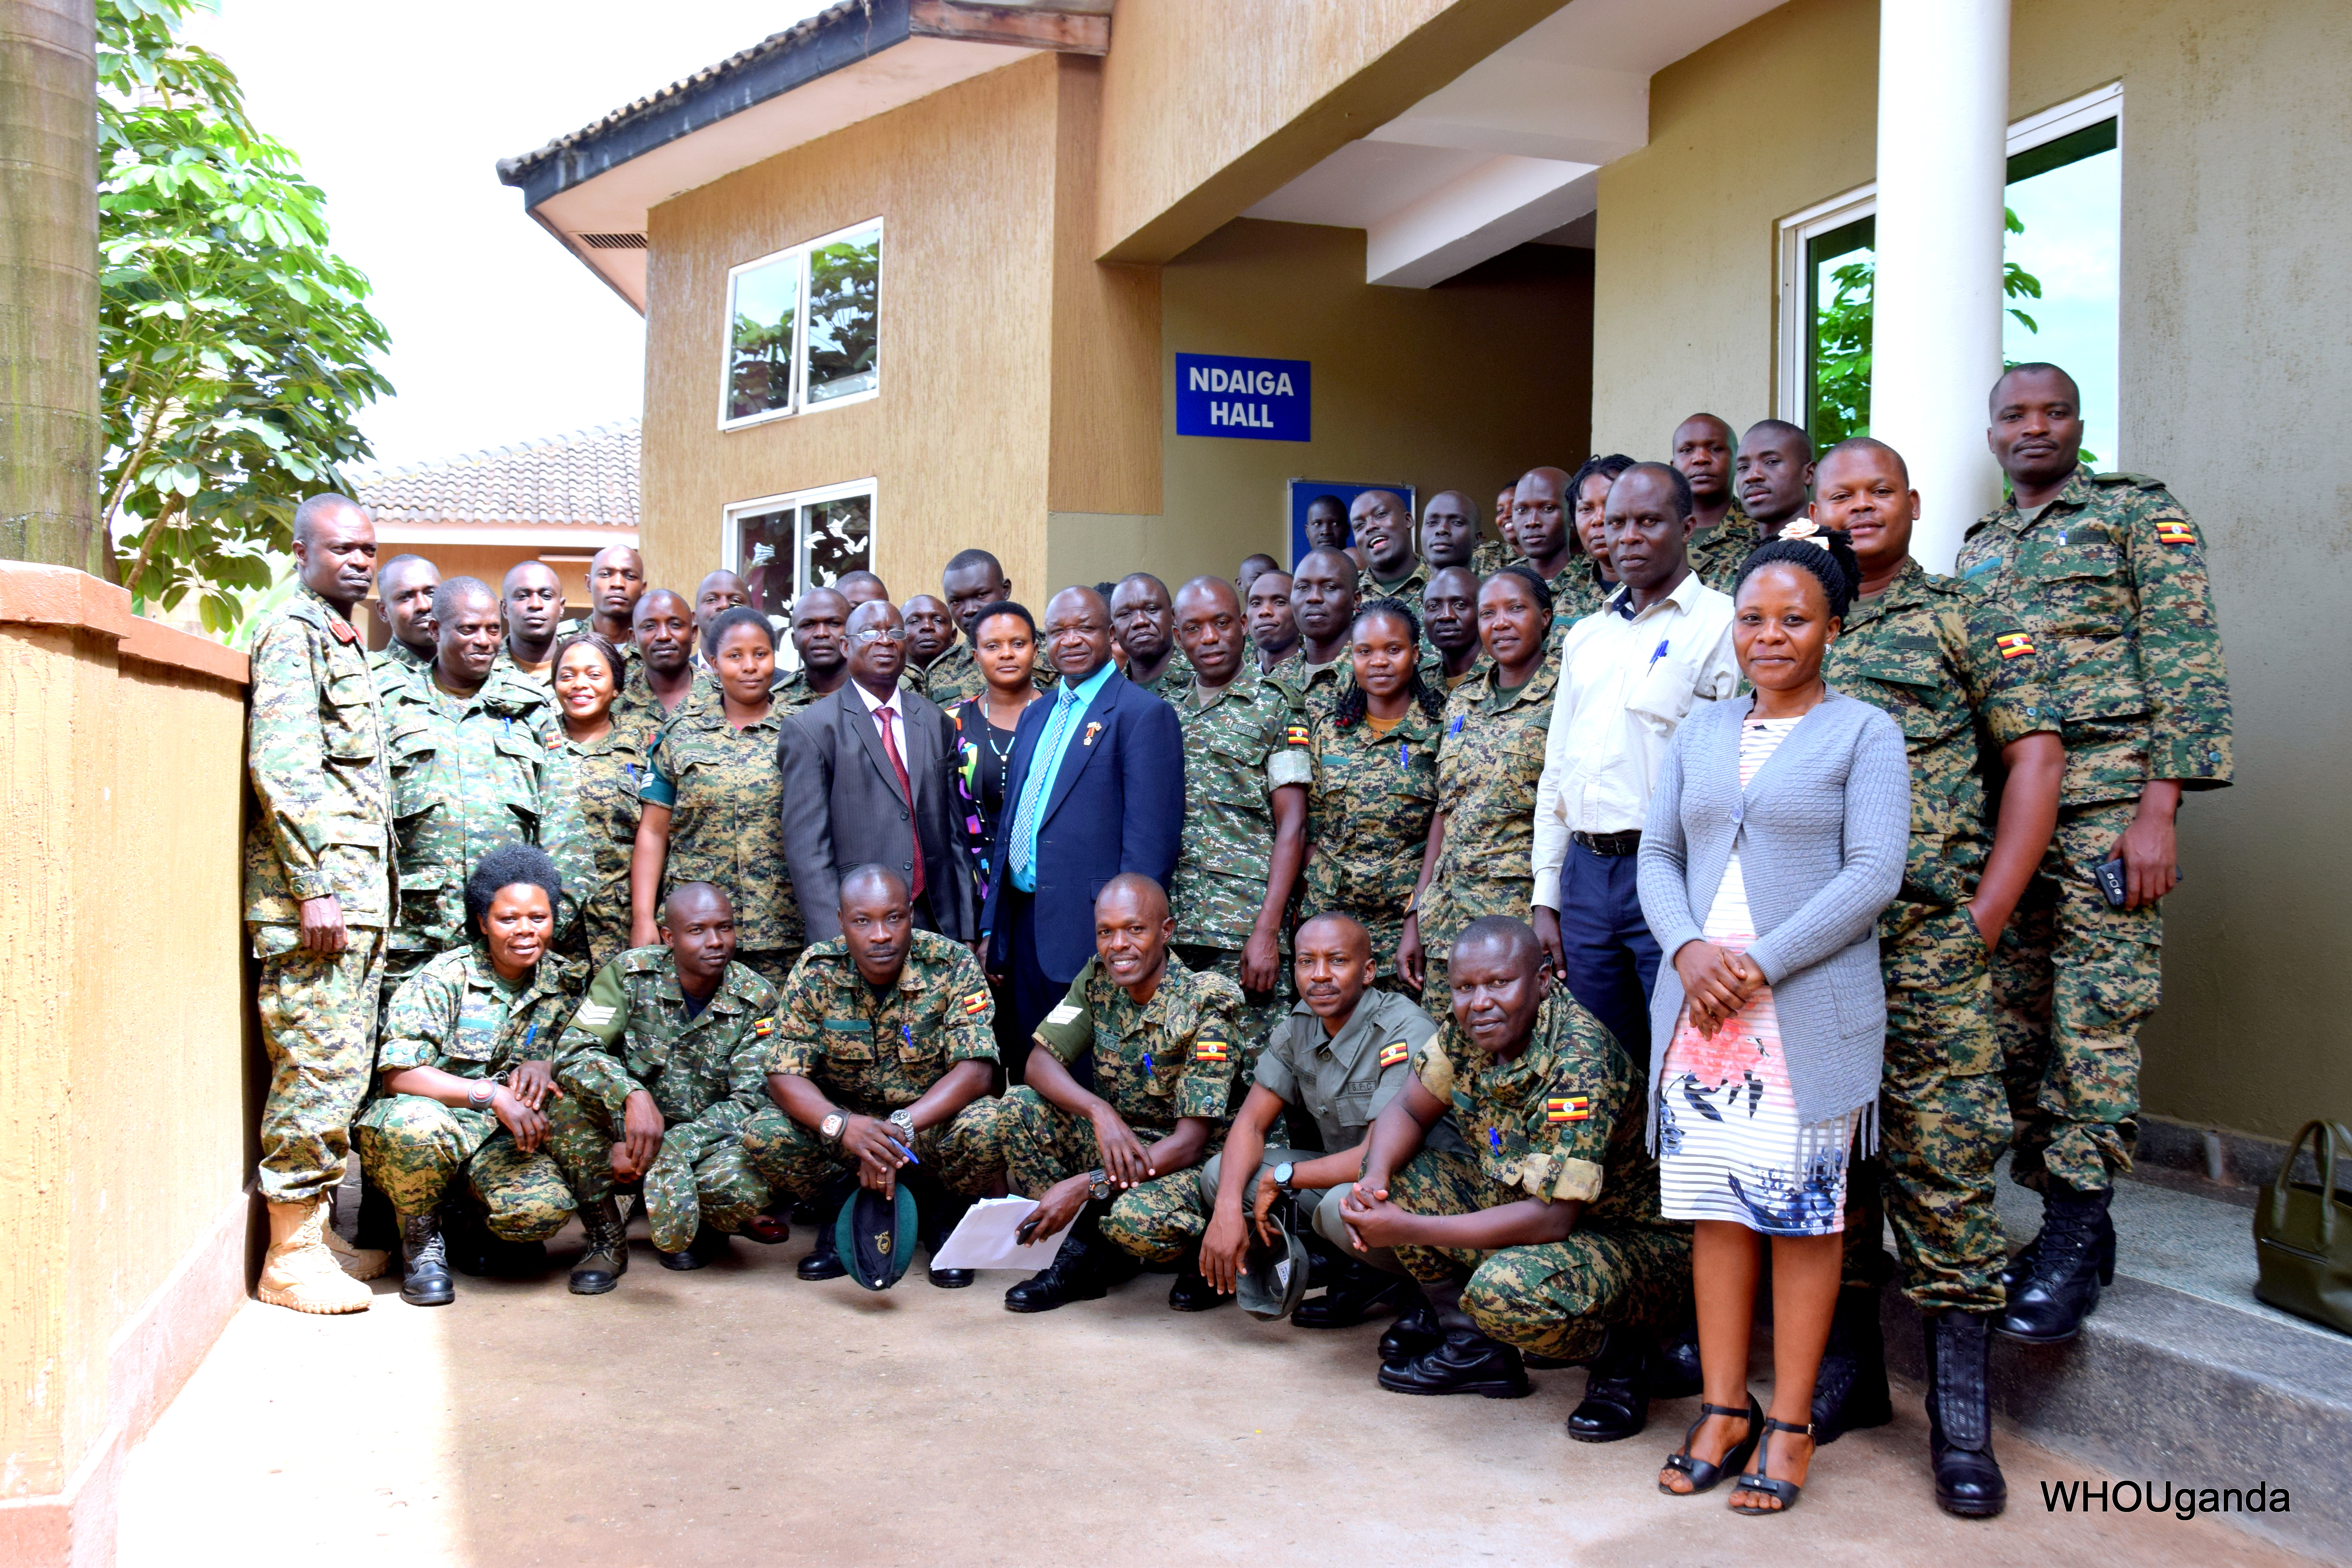 WHO and the Ministry of Health Train Members of the Armed Forces on Ebola Case Management